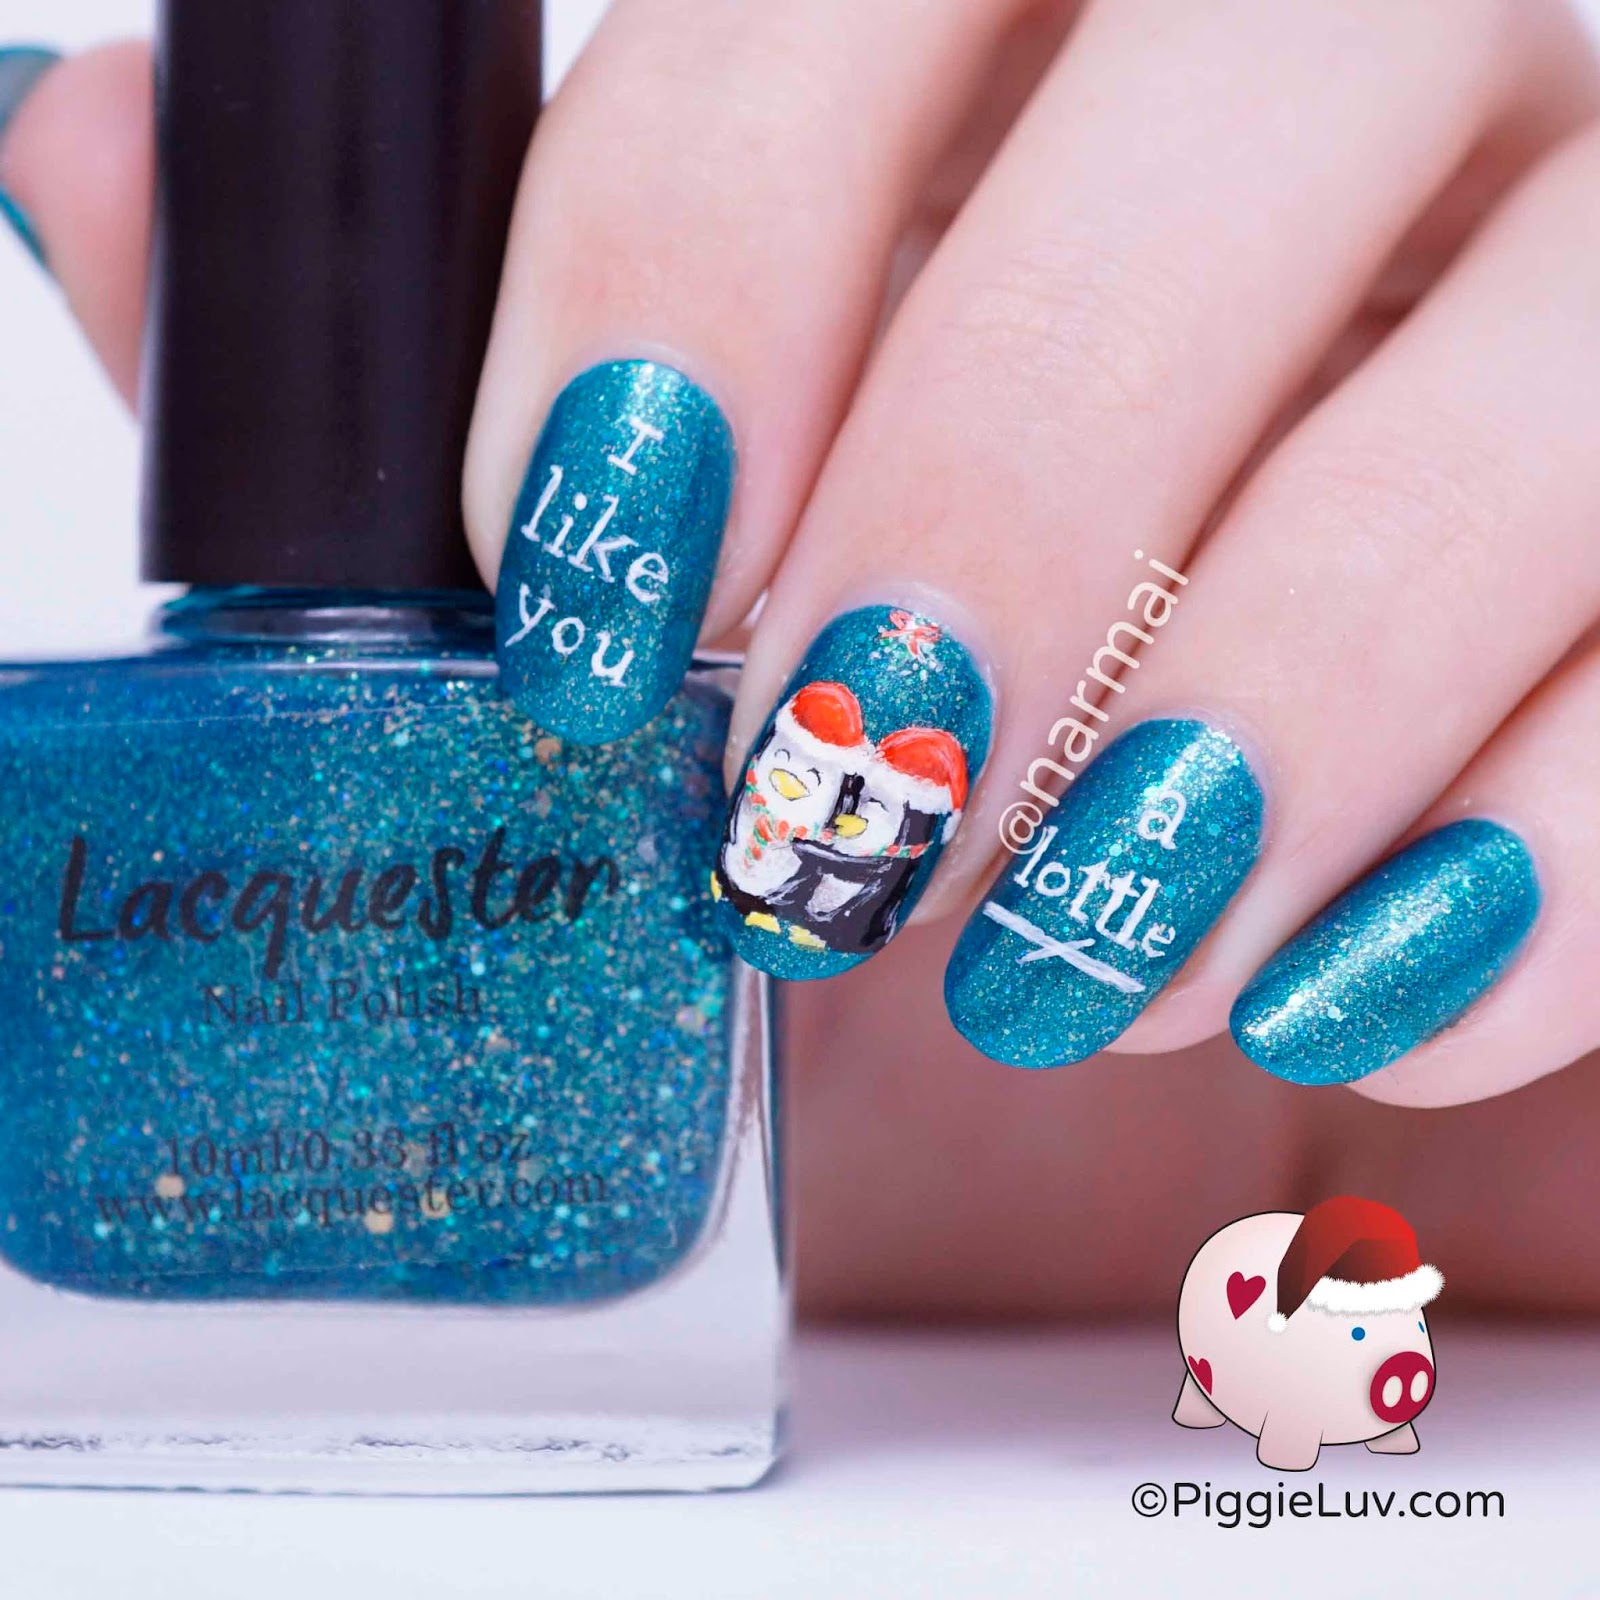 Piggieluv penguins under mistletoe nail art for christmas i used lacquester taling for the base it looked like an arctic color to me i got this one in my december nail the mail box which is an awesome one this prinsesfo Choice Image